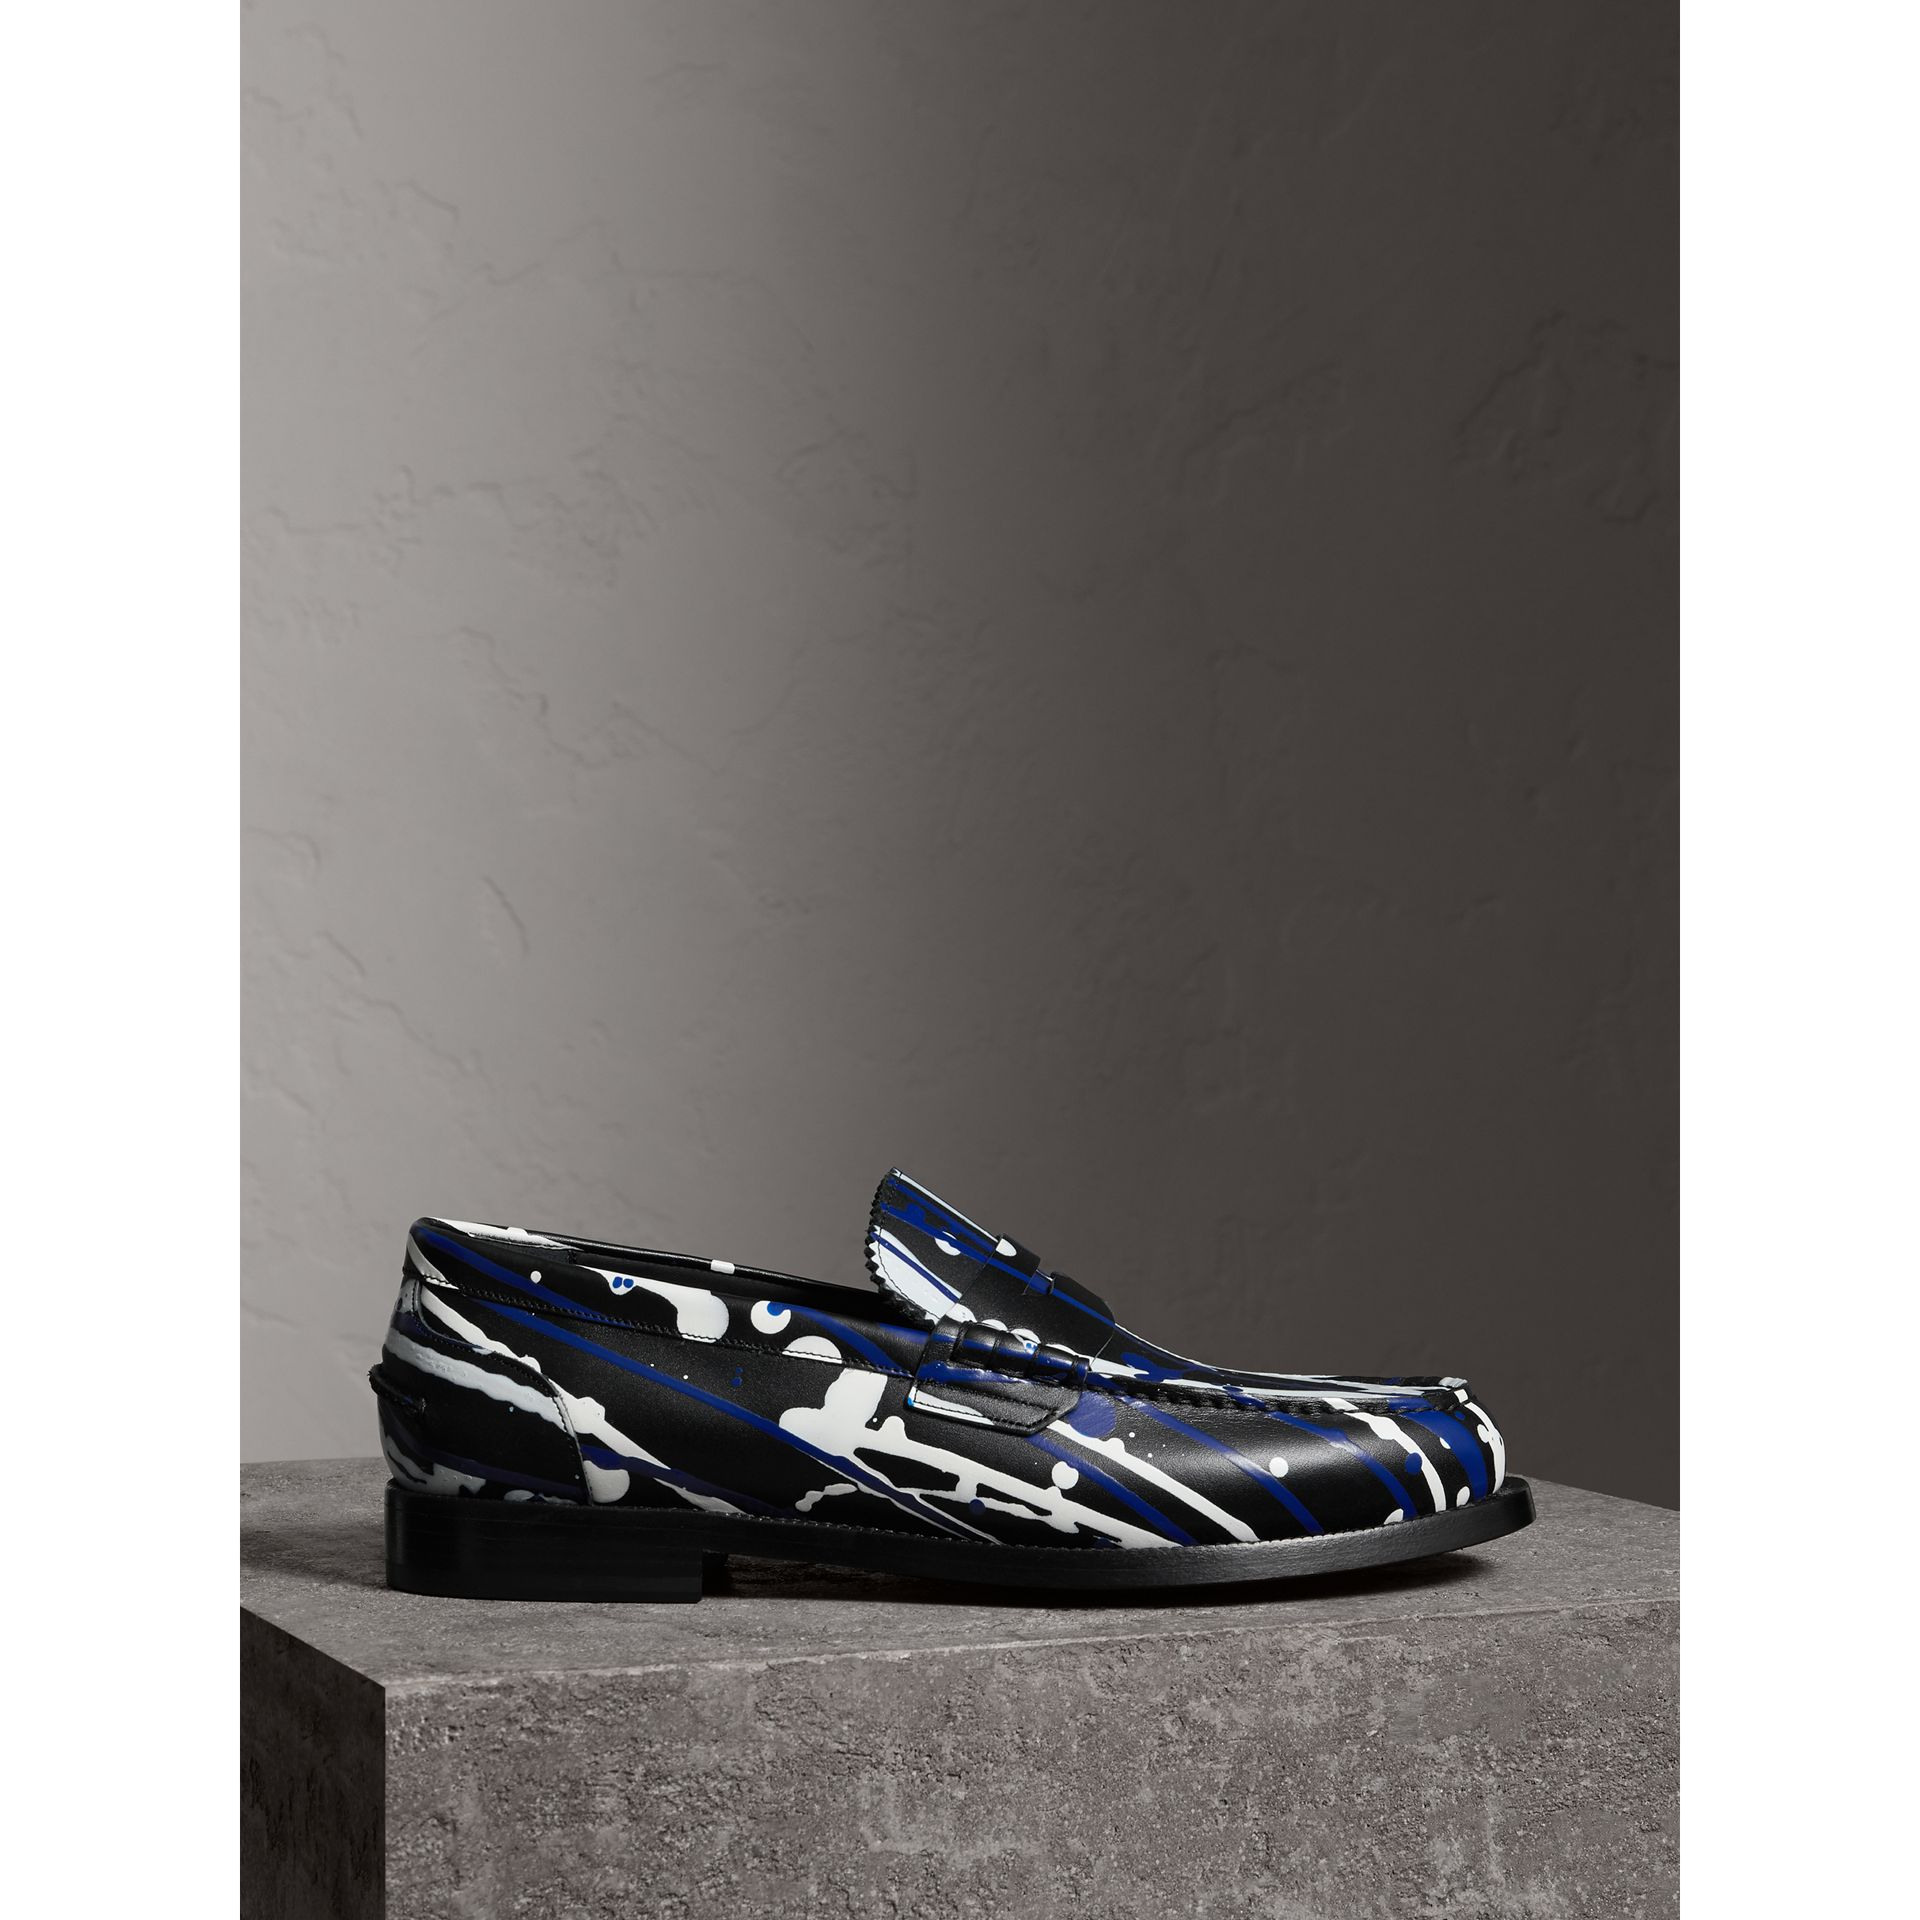 Burberry Black Splash Leather Penny Loafers